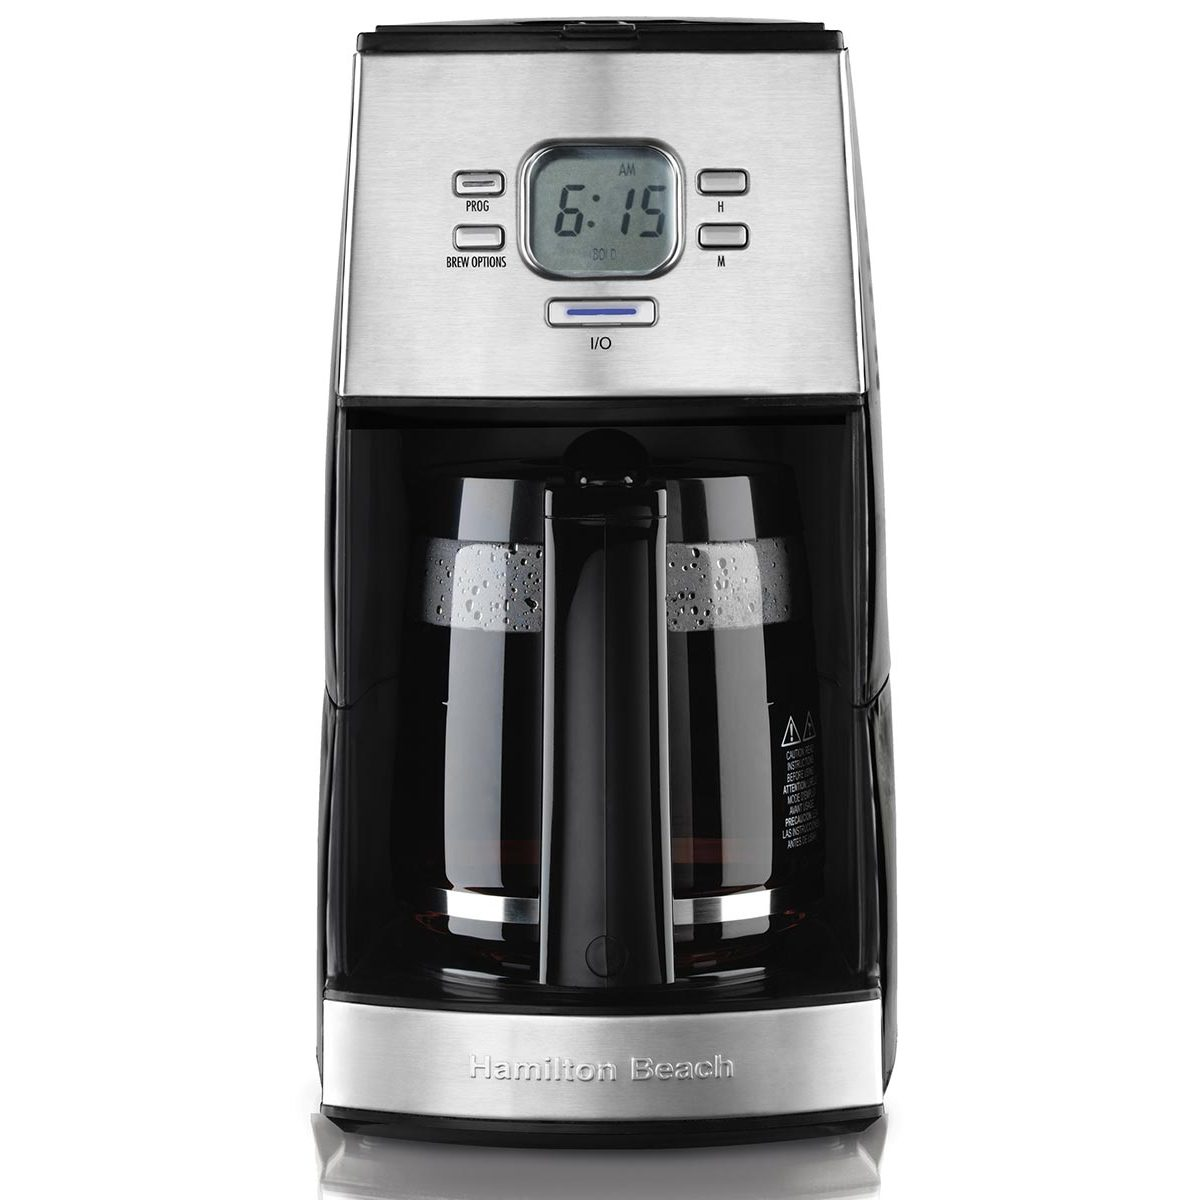 Programmable 12 Cup Coffee Maker (43254R)